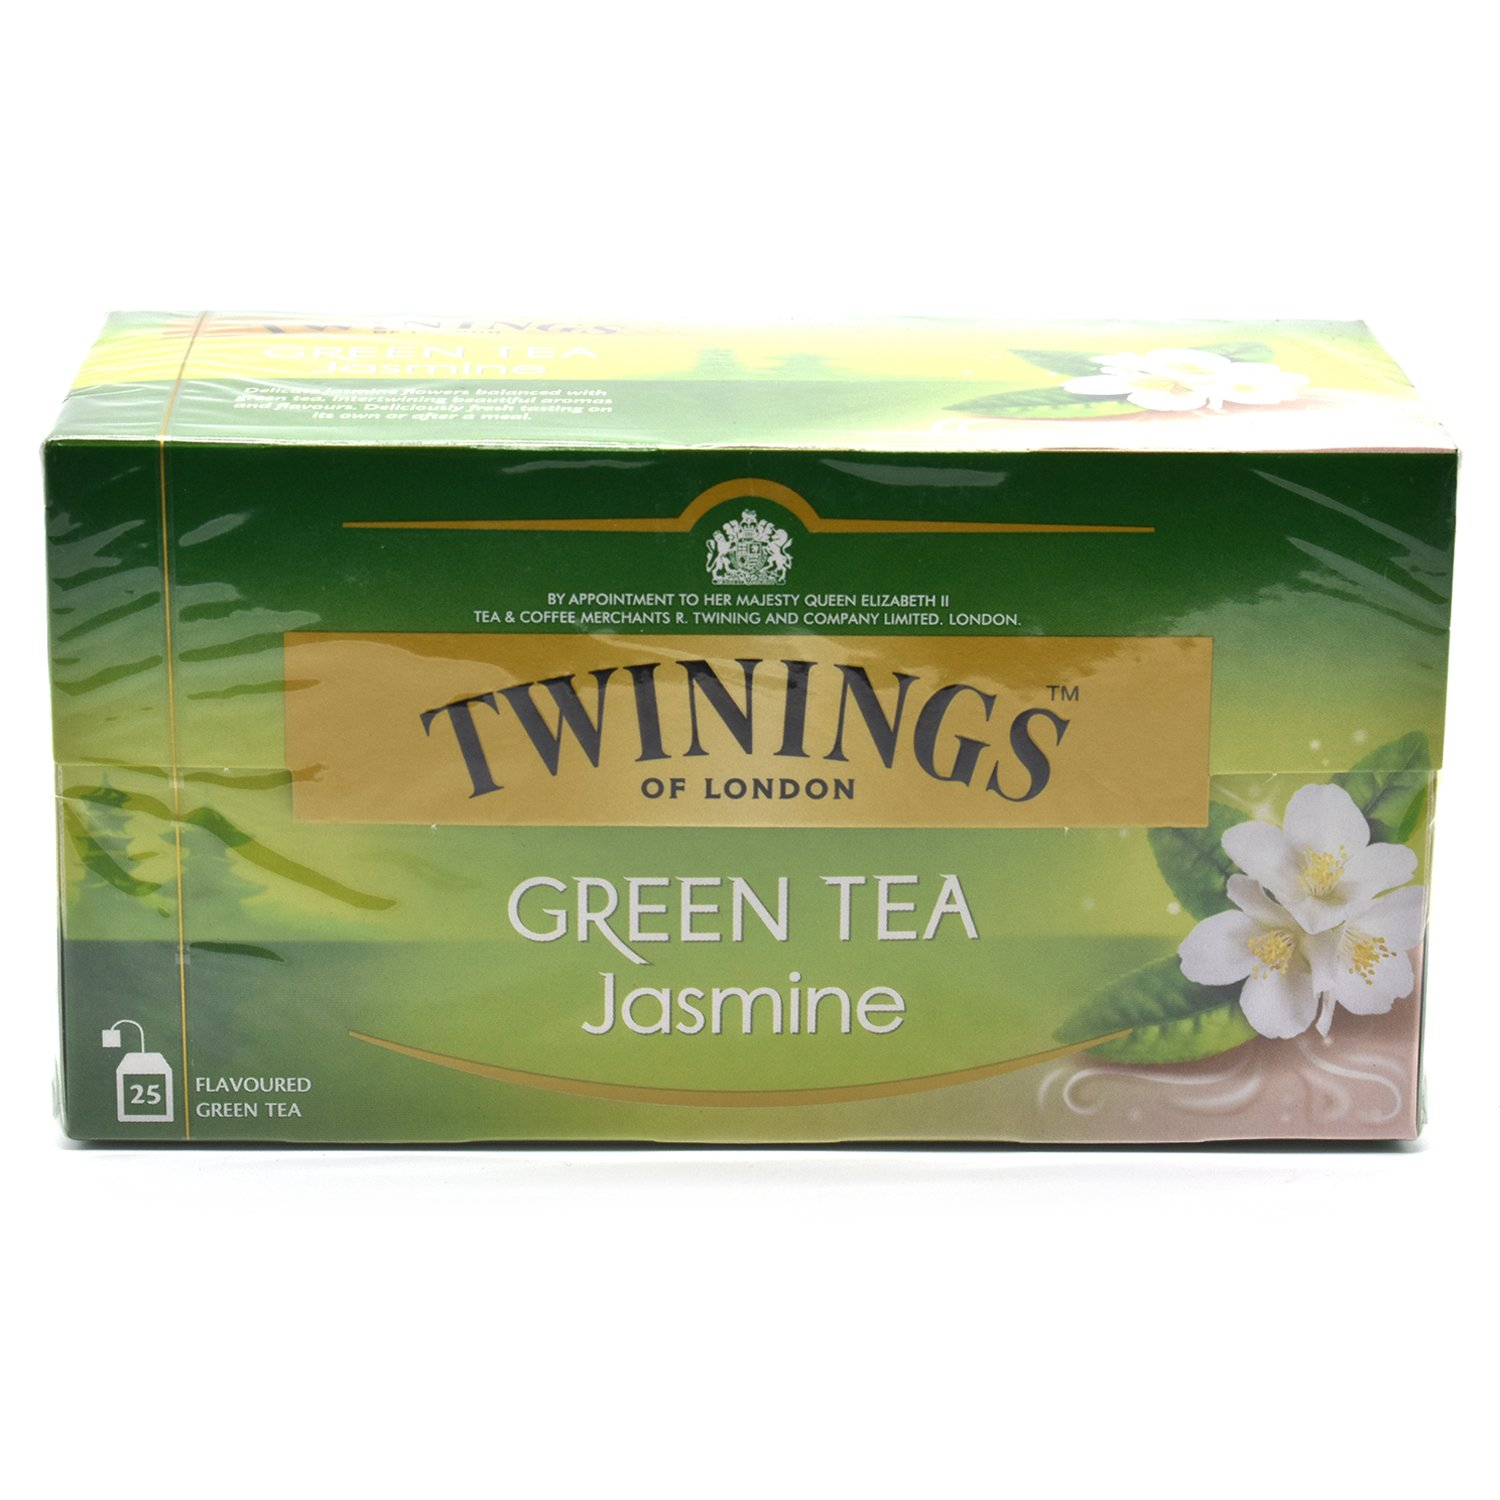 Twinings london green tea jasmine imported 25 tea bags amazon twinings london green tea jasmine imported 25 tea bags amazon grocery gourmet foods izmirmasajfo